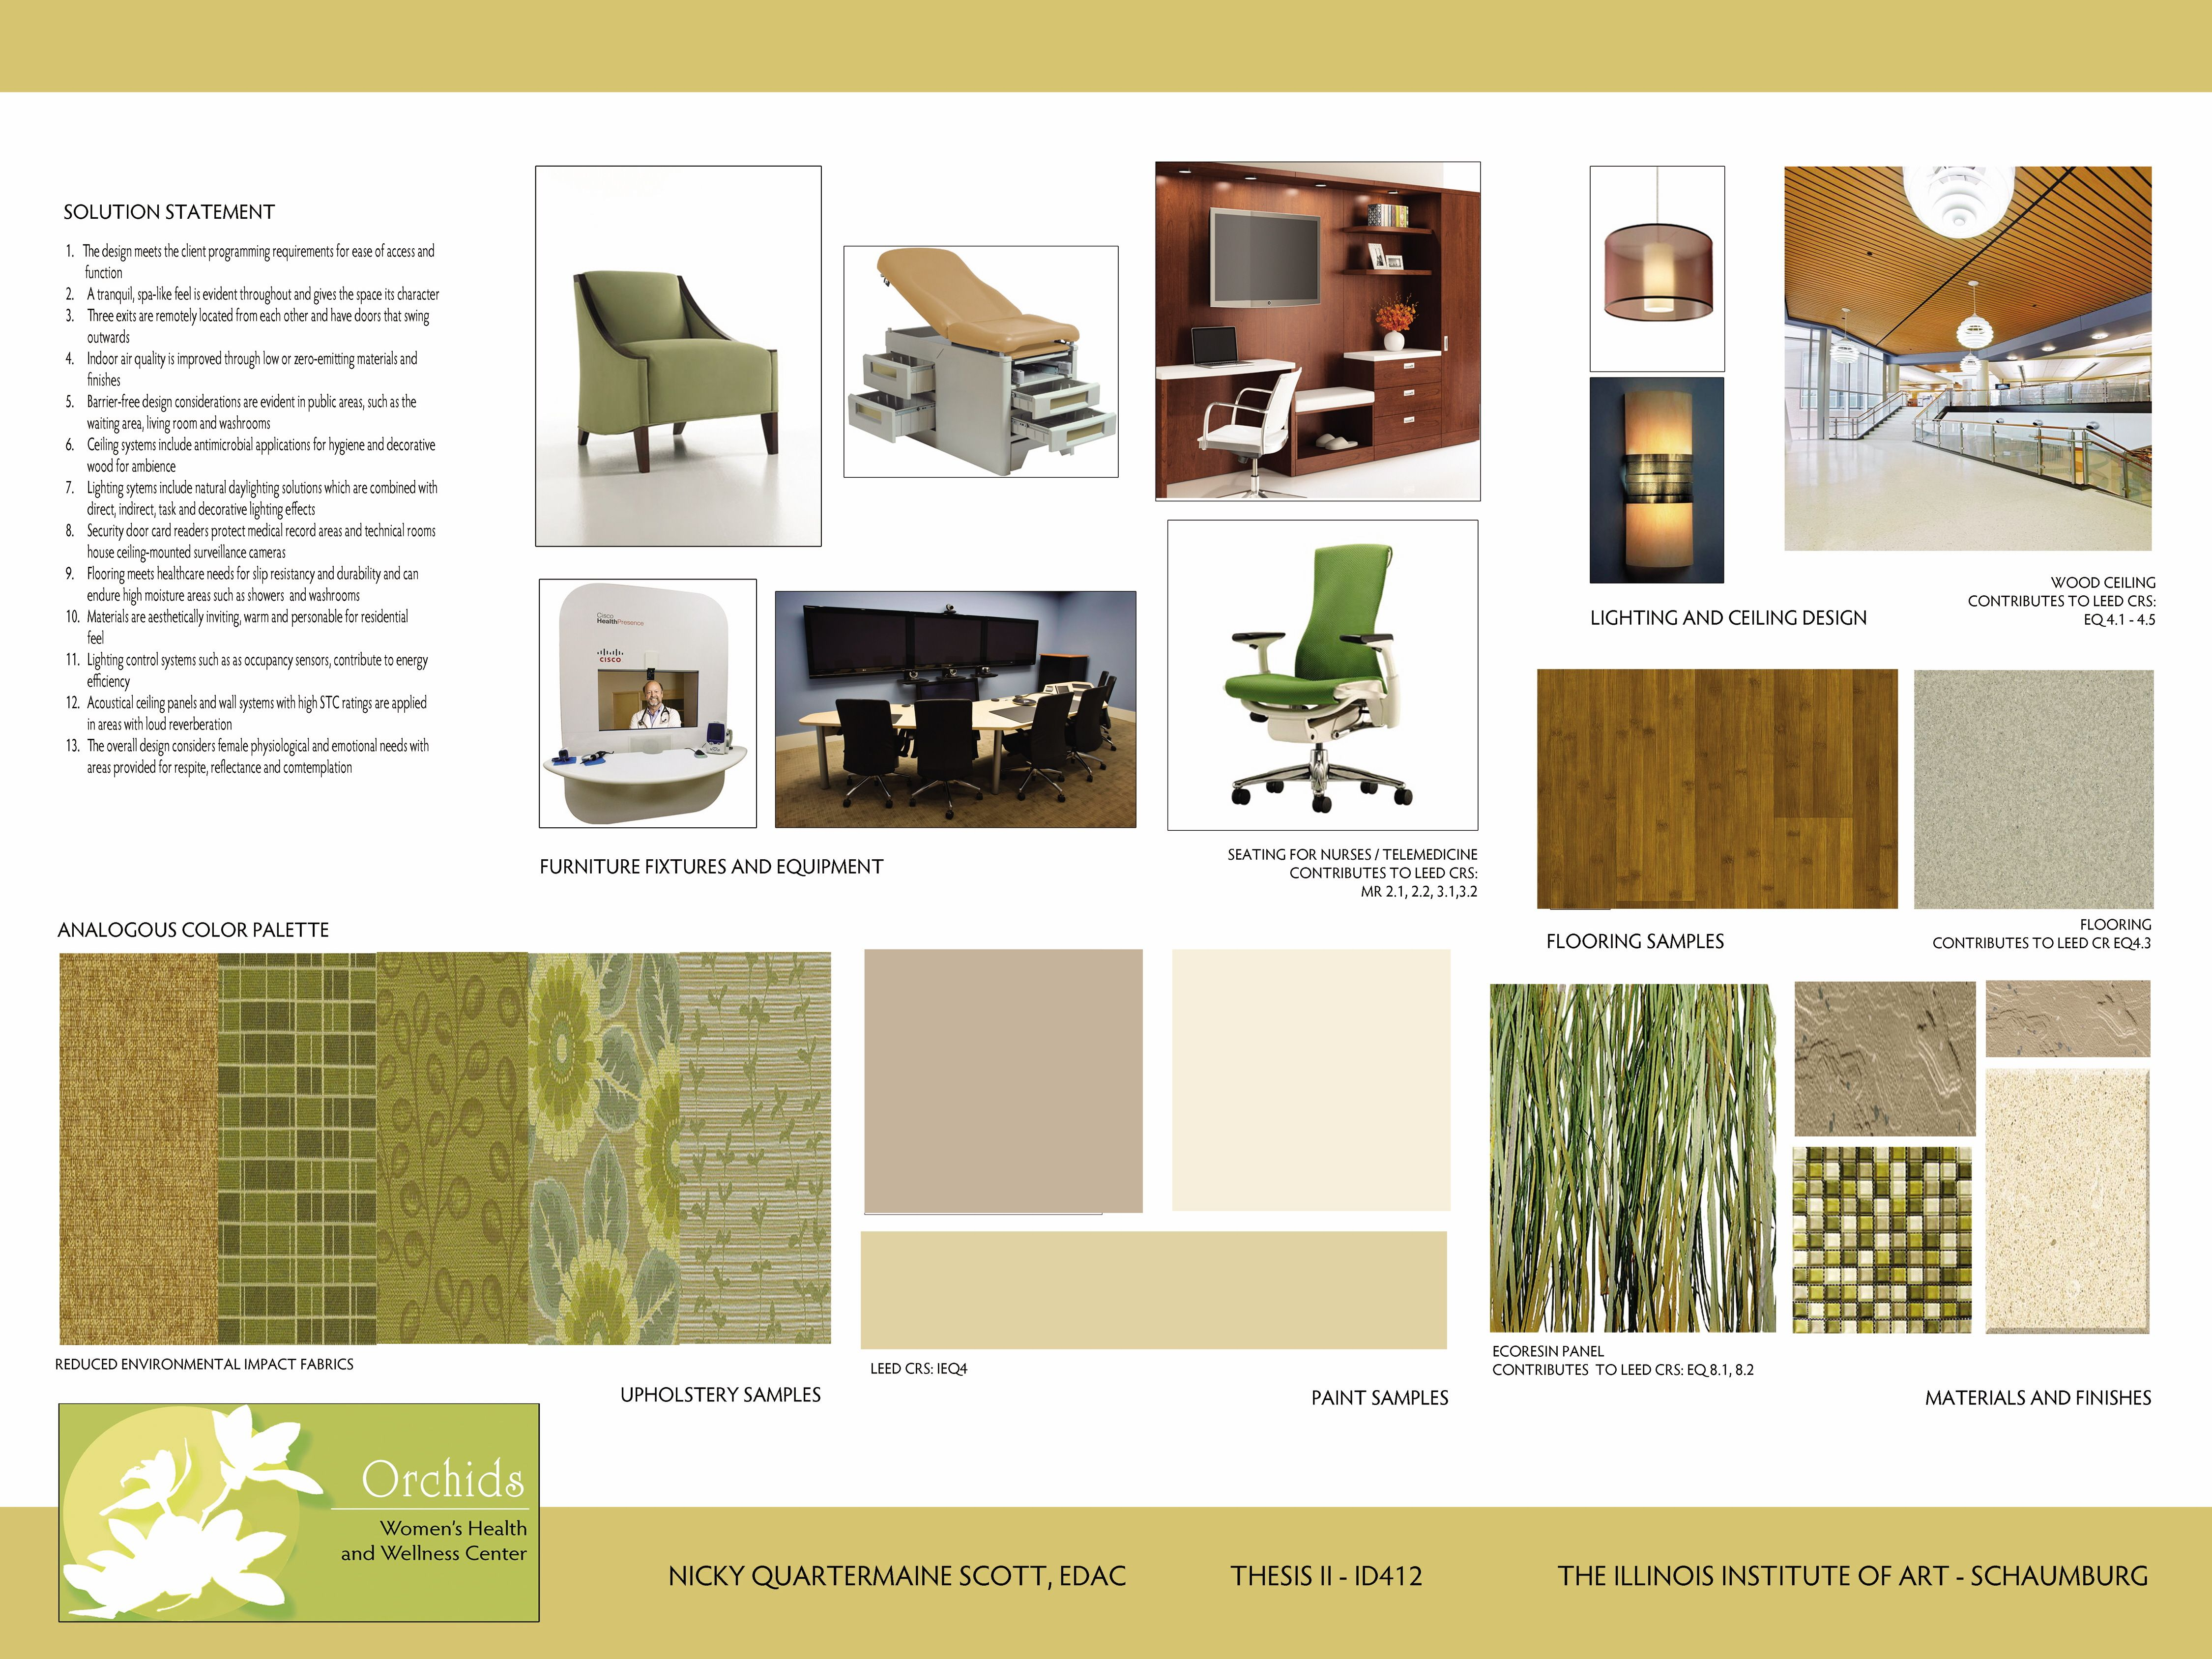 Pin By Ivana S On Interior Material And Furniture Board With